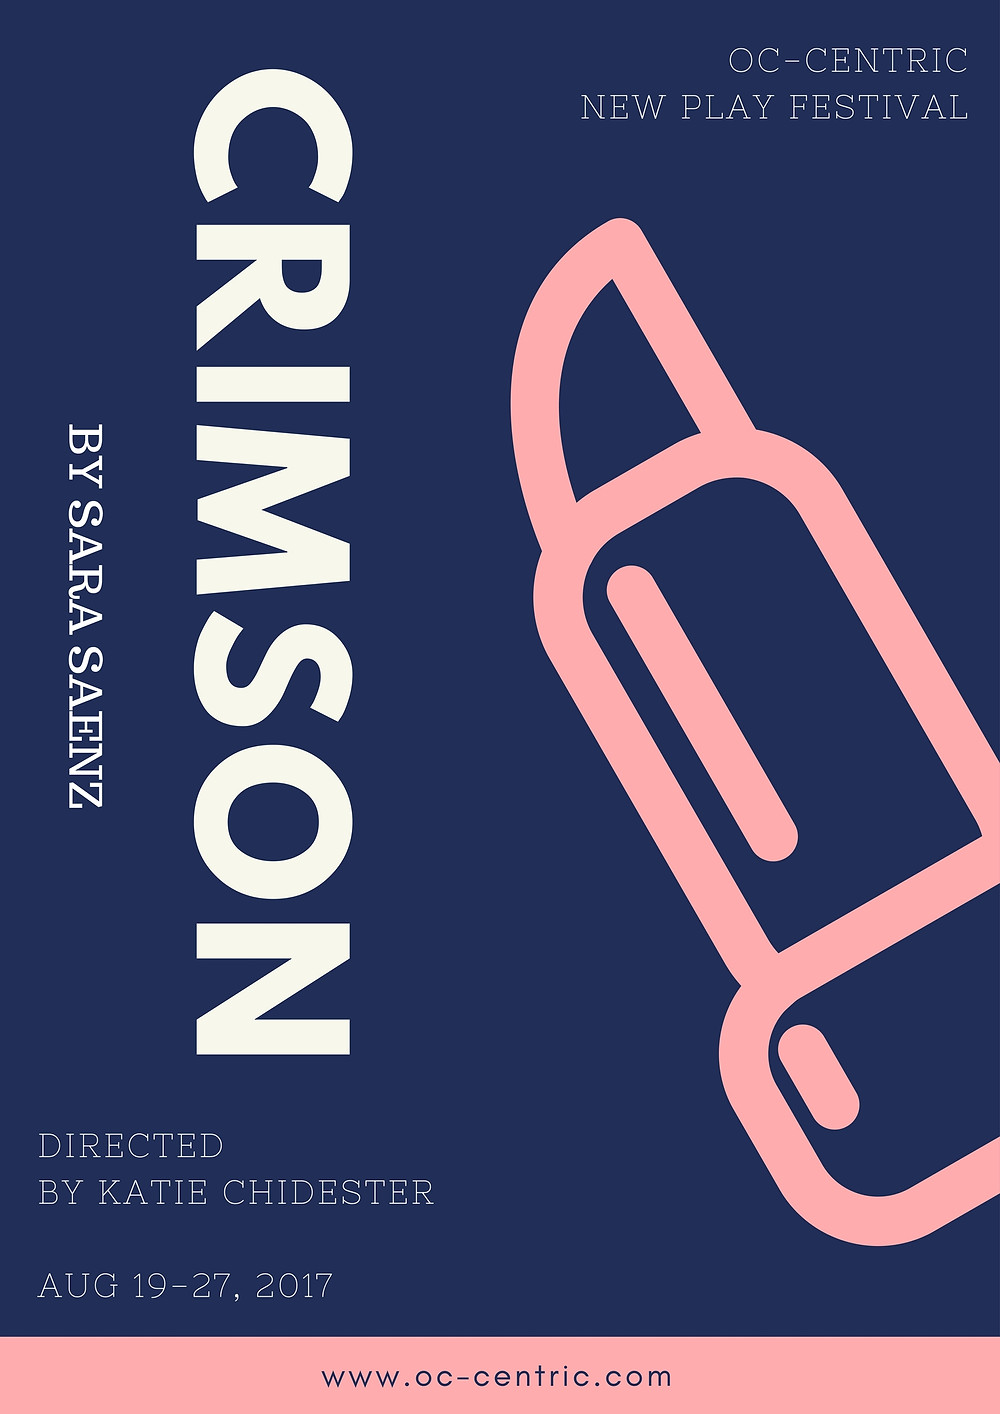 Crimson by Sara Saenz will premier at OC-Centric New Play Festival August 2017